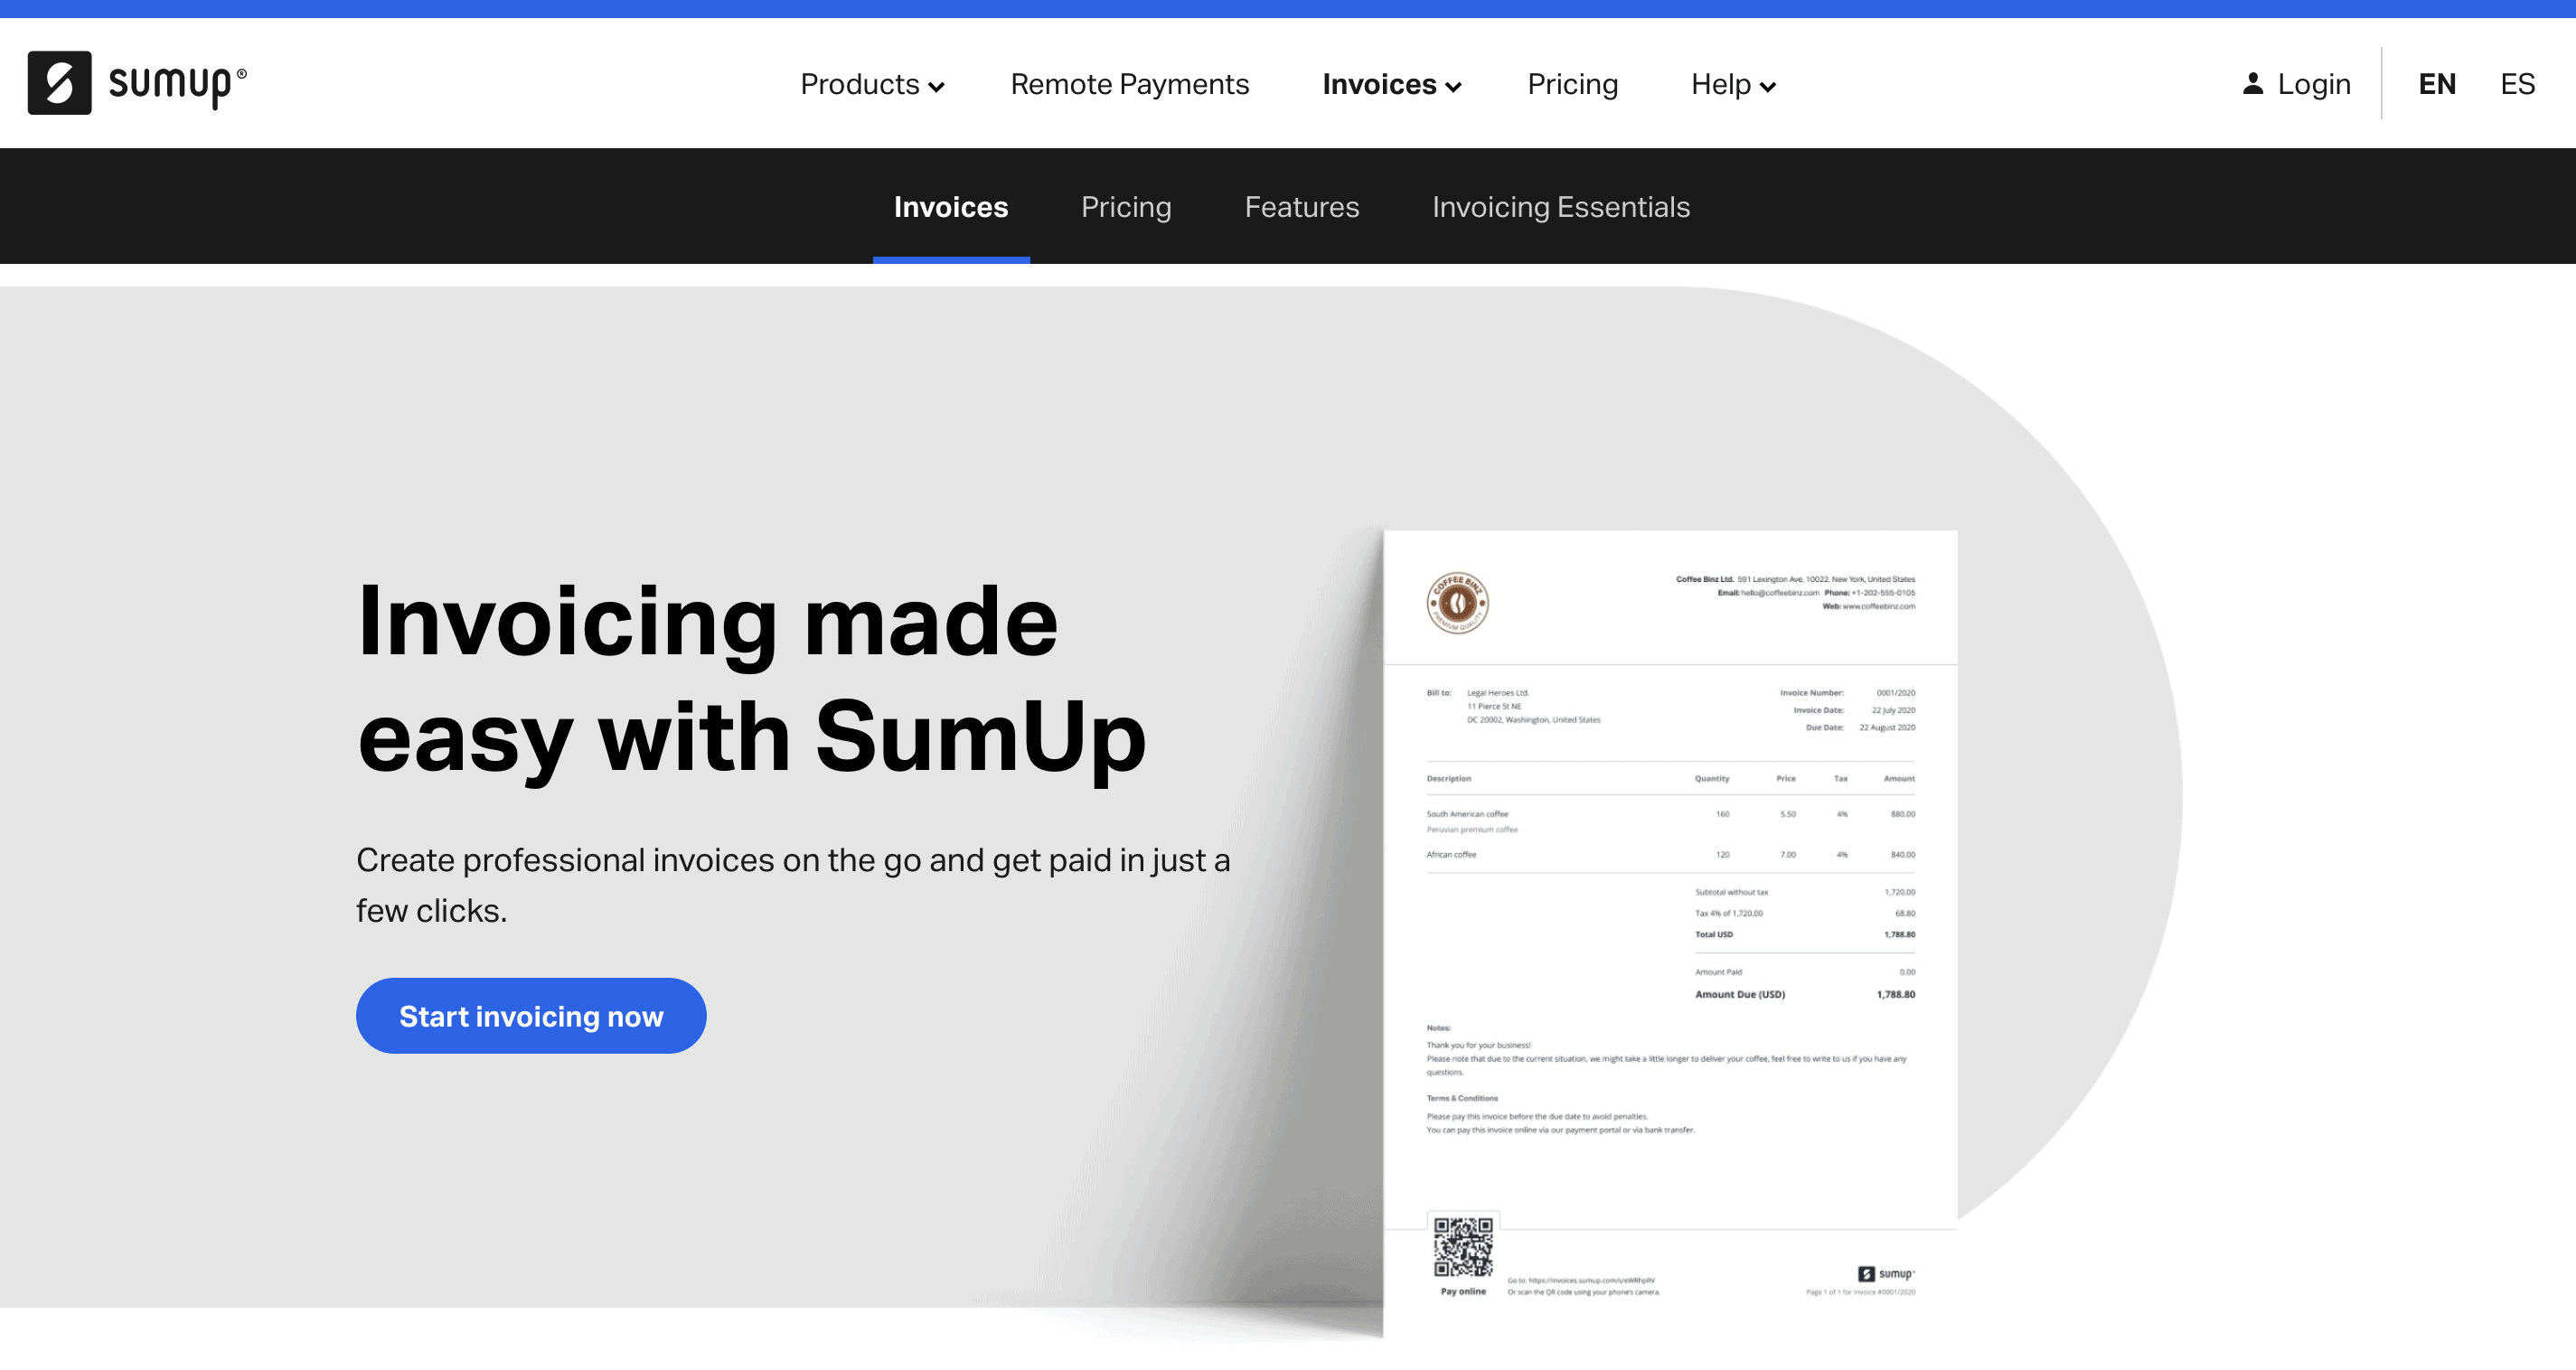 sumup website page about invoicing